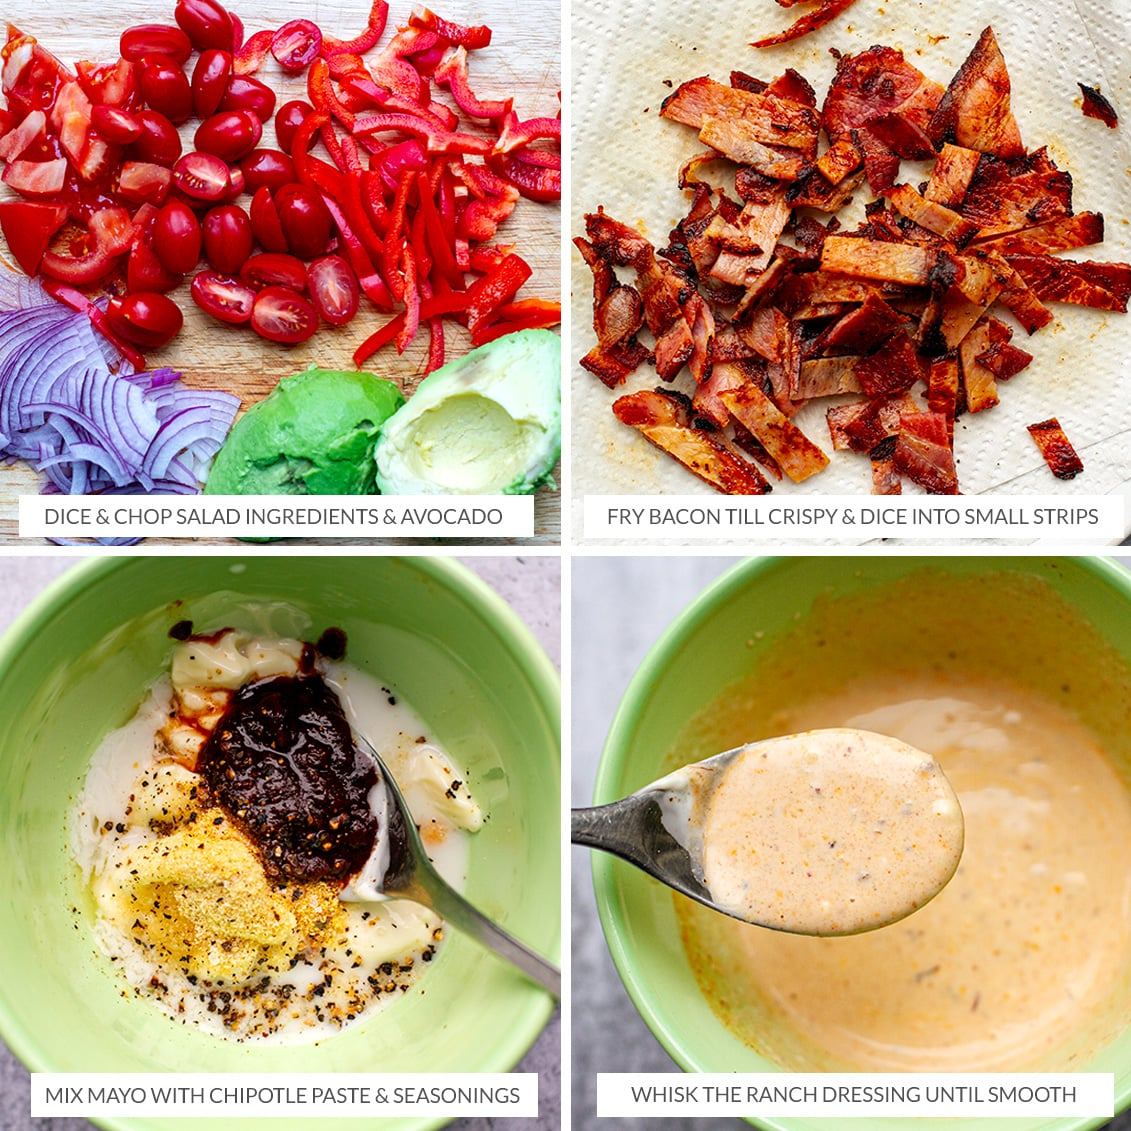 Making chipotle ranch dressing and chopping salad ingredients